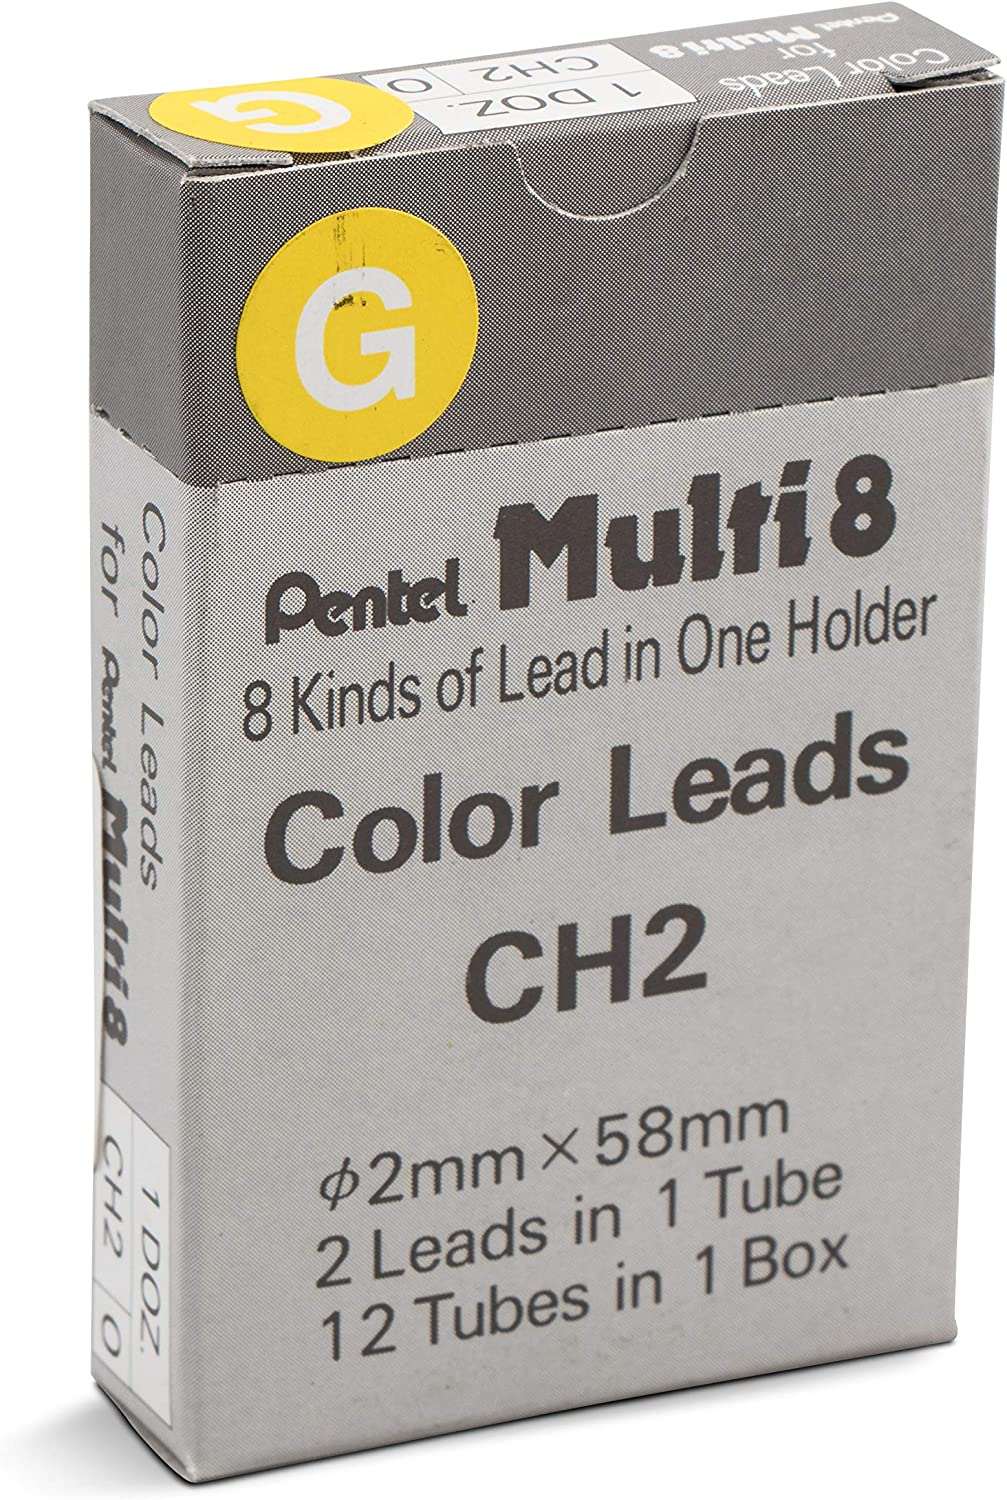 Orange Lead 12 tubes Pentel CH2 Multi 8 2.0mm Colour Pencil Refill